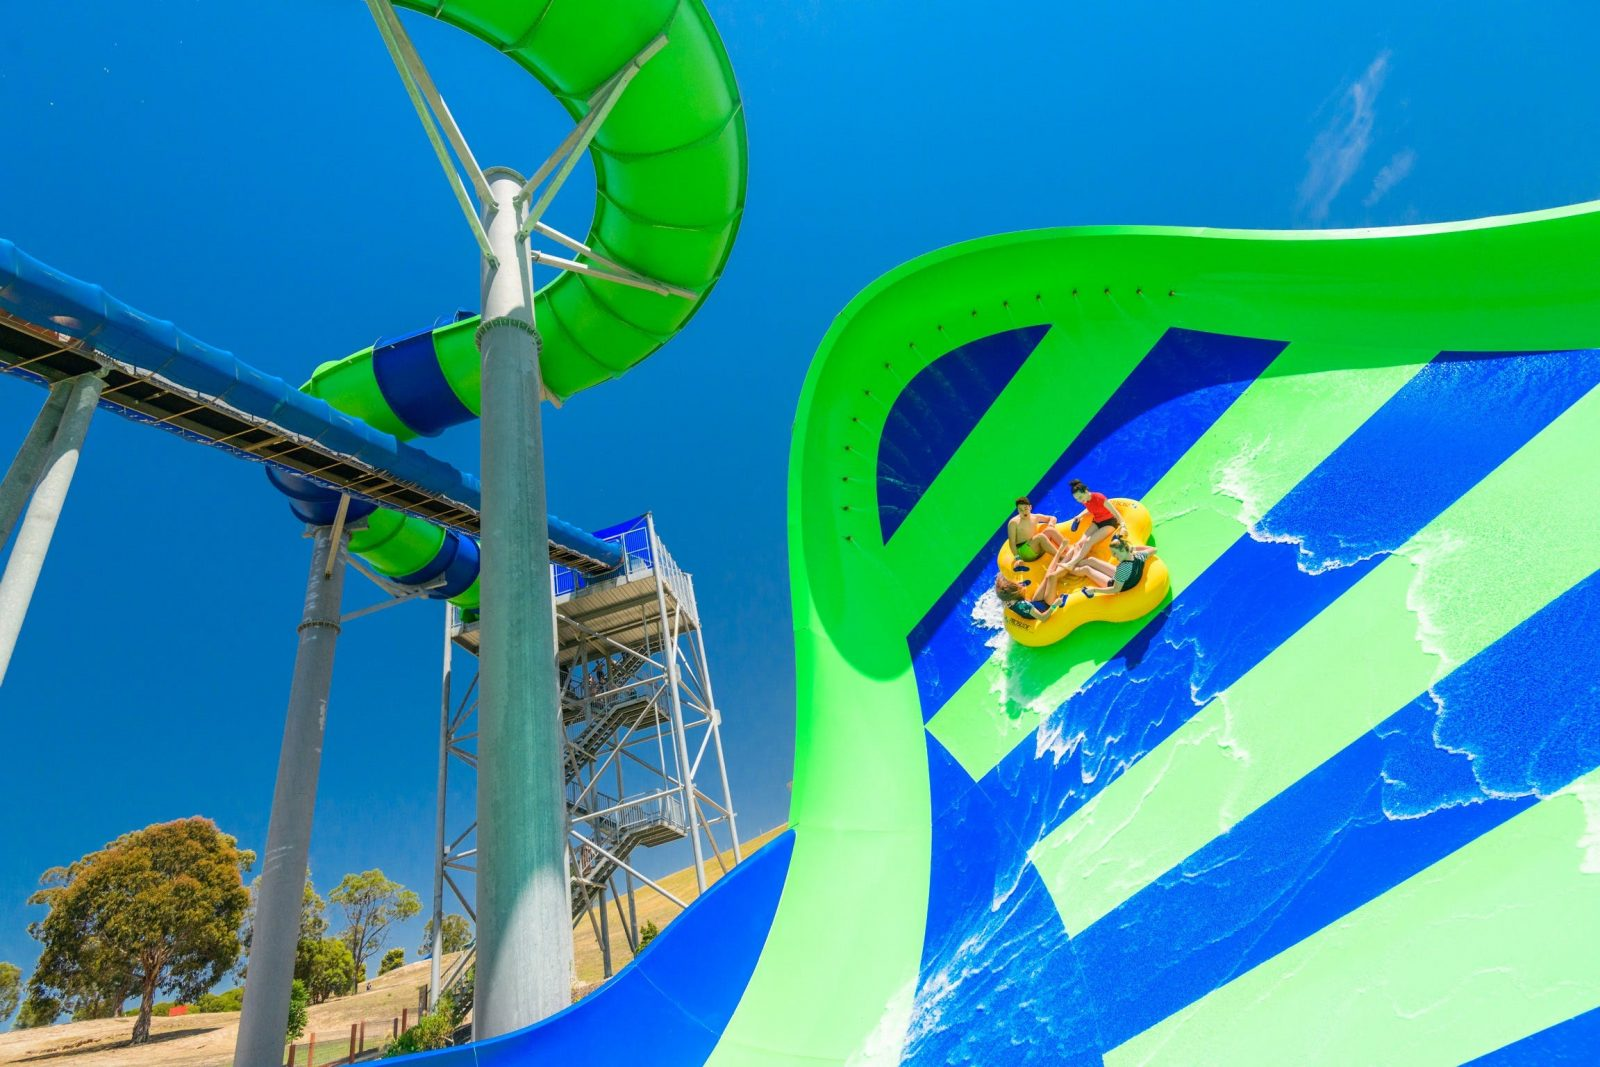 Experience Zero Gravity on the Gravity Wave Waterslide at Funfields